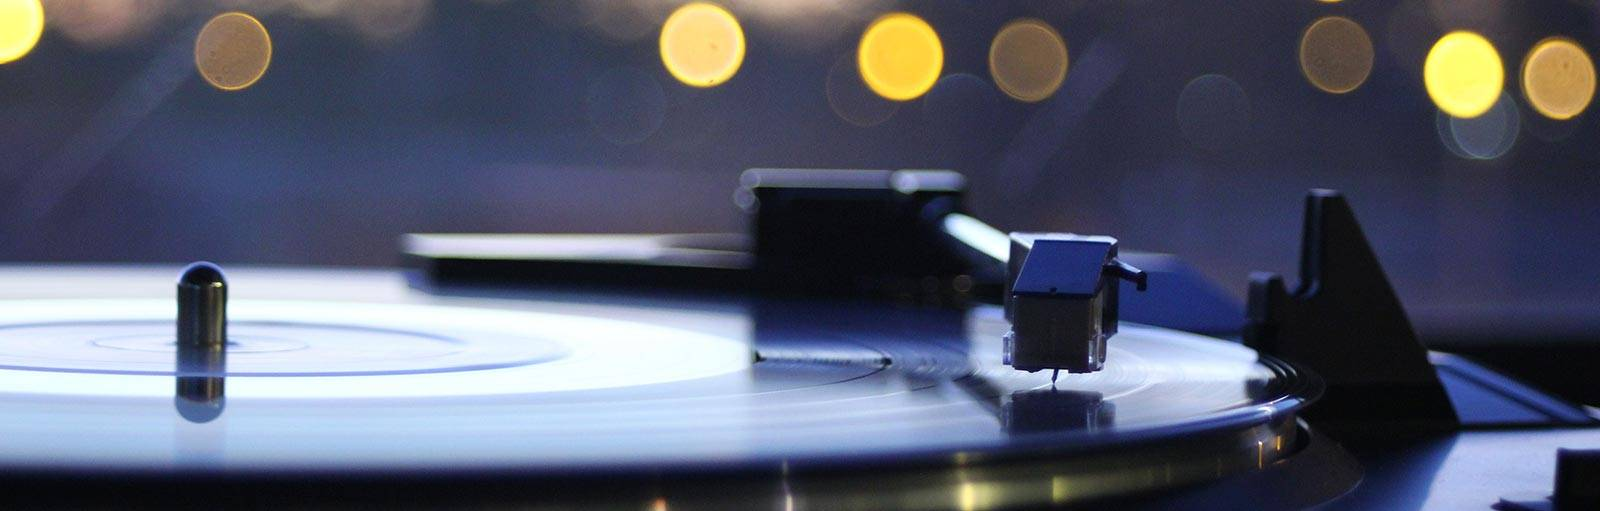 Record spinning on turntable